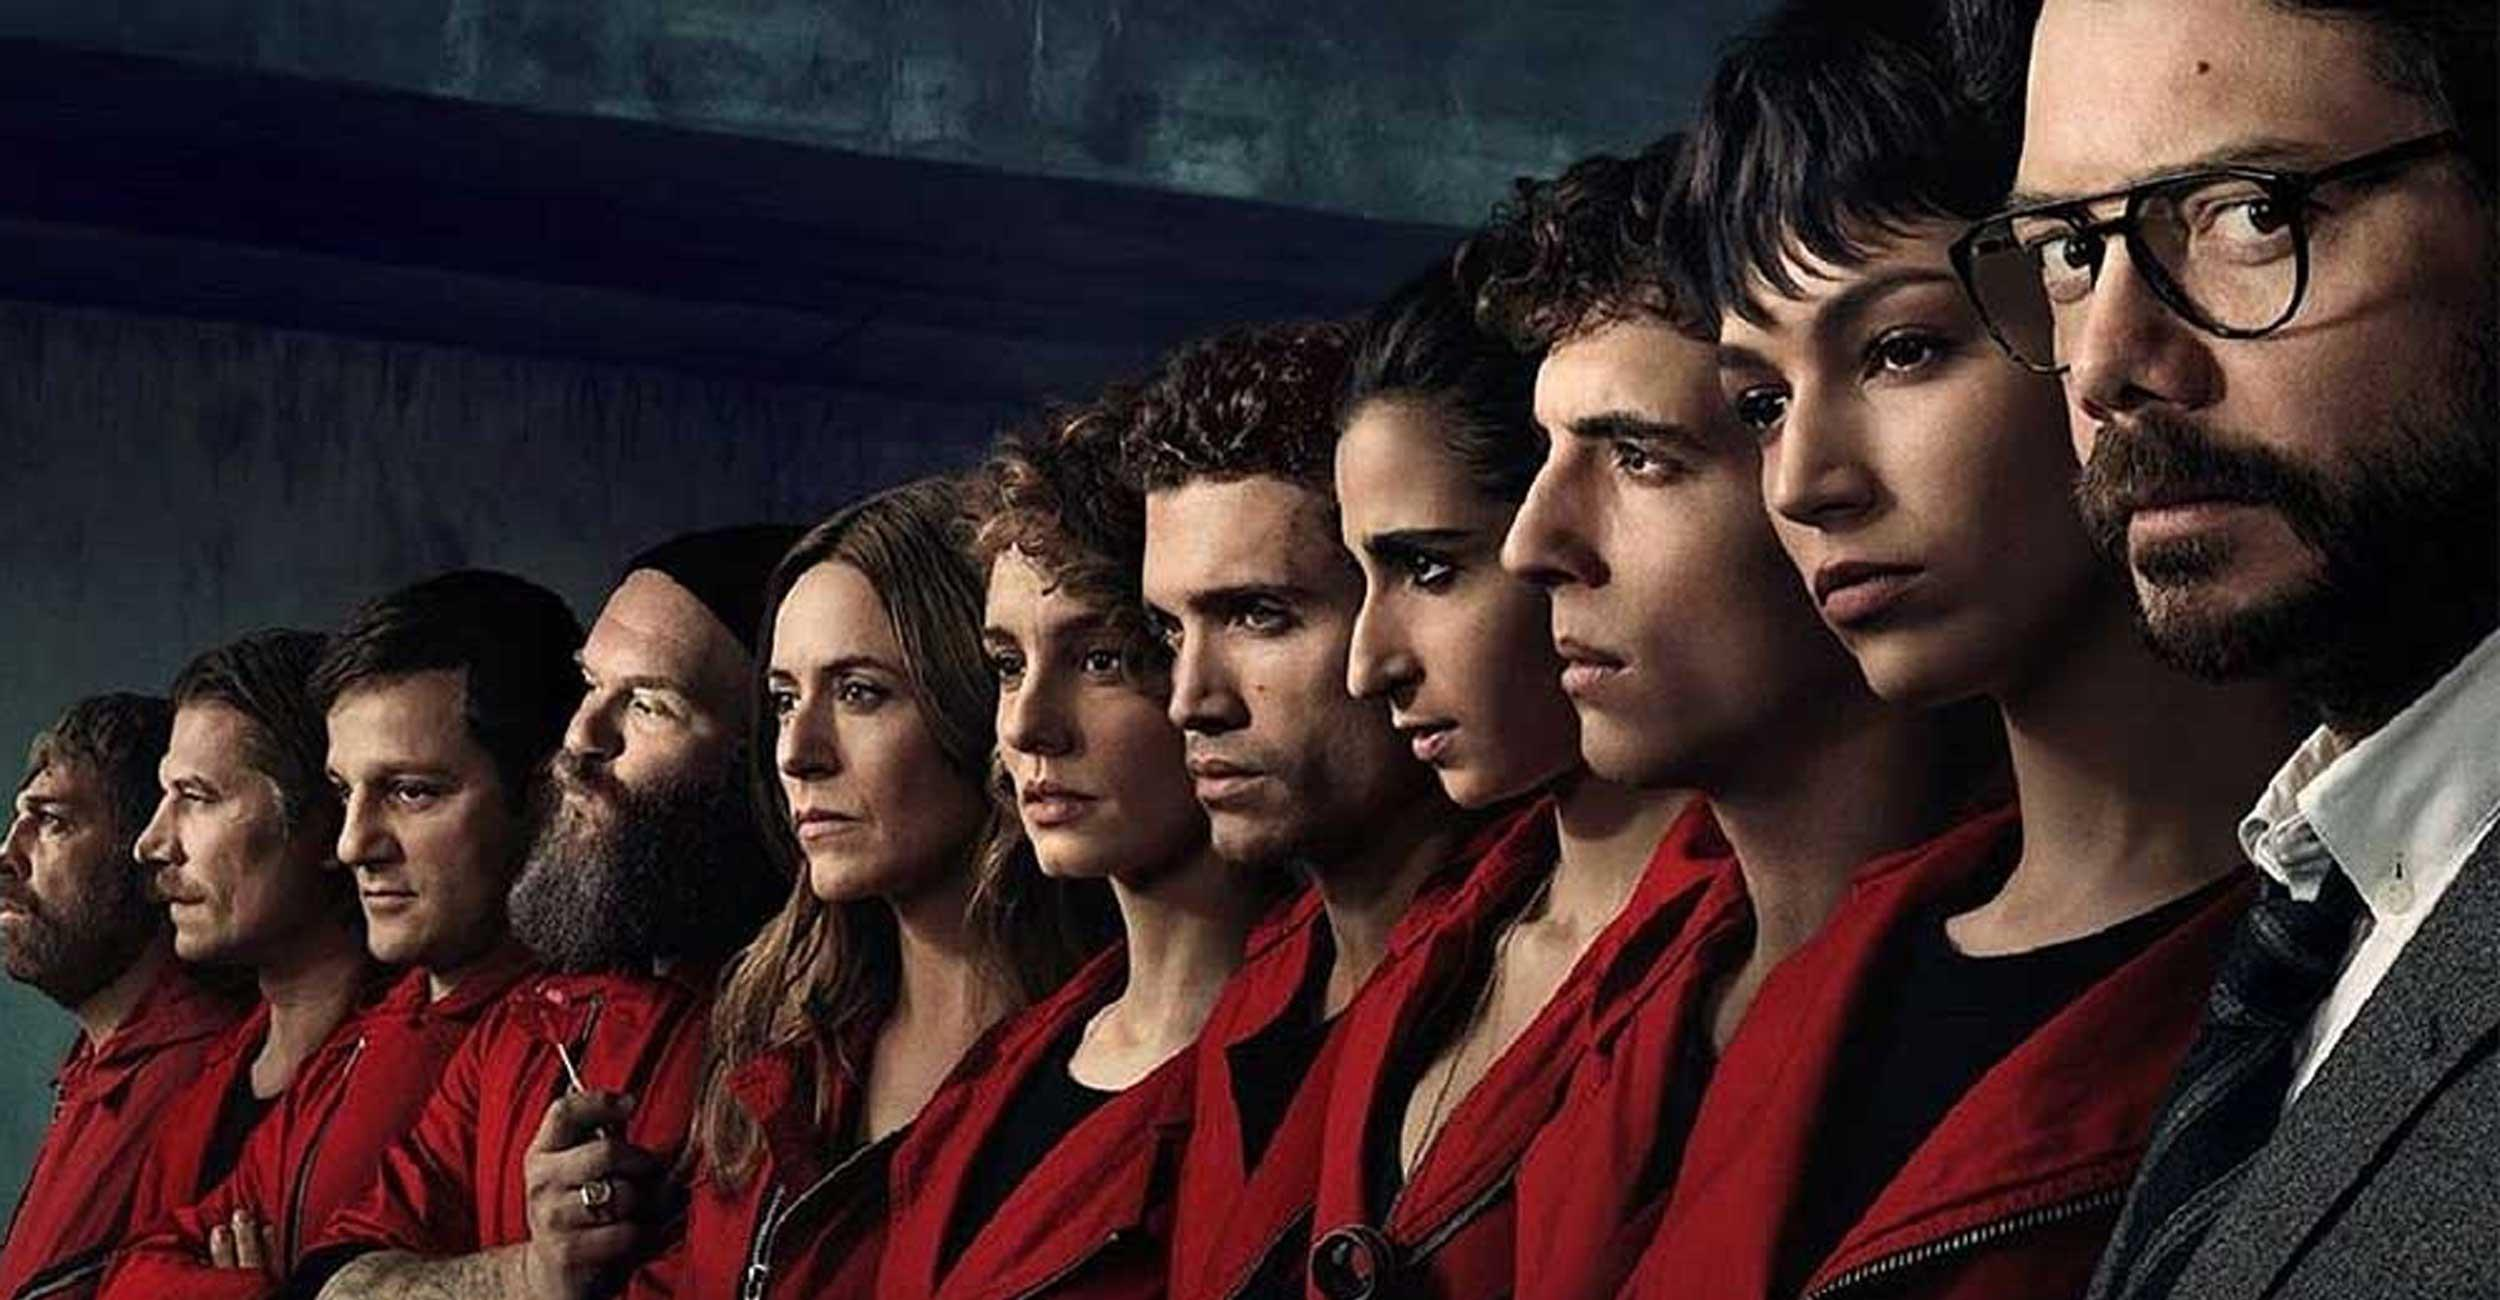 Here are 5 jaw-dropping revelations from Money Heist Documentary. Spoilers for Money Heist Part 4 ahead.